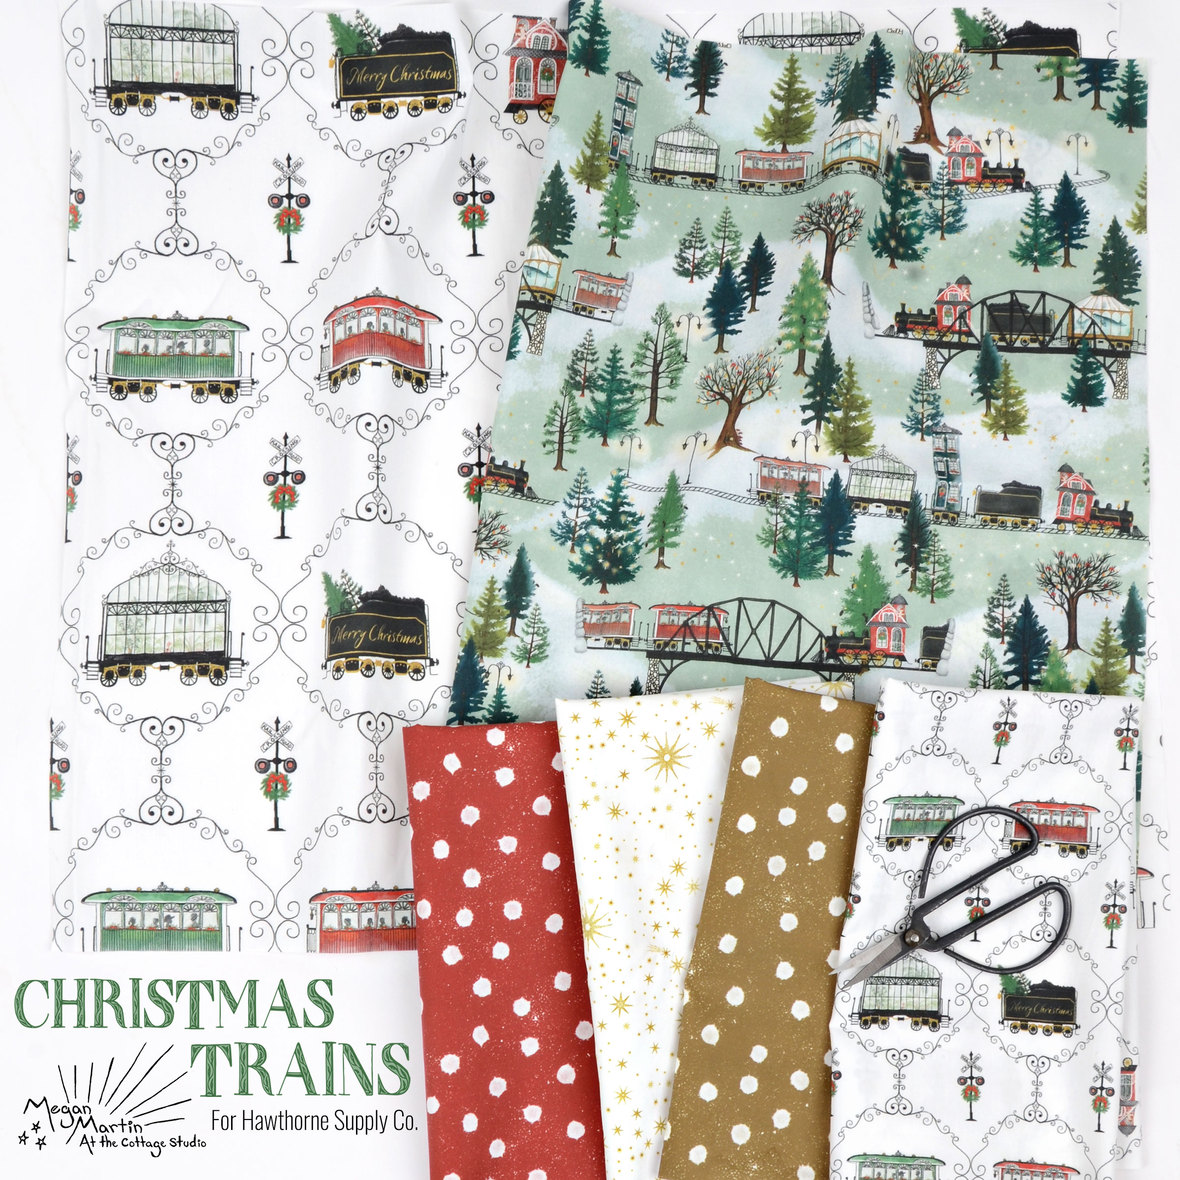 Megan-Martin-At-the-Cottage-Studio-Fabric-Christmas-Trains-at-Hawthorne-Supply-Co